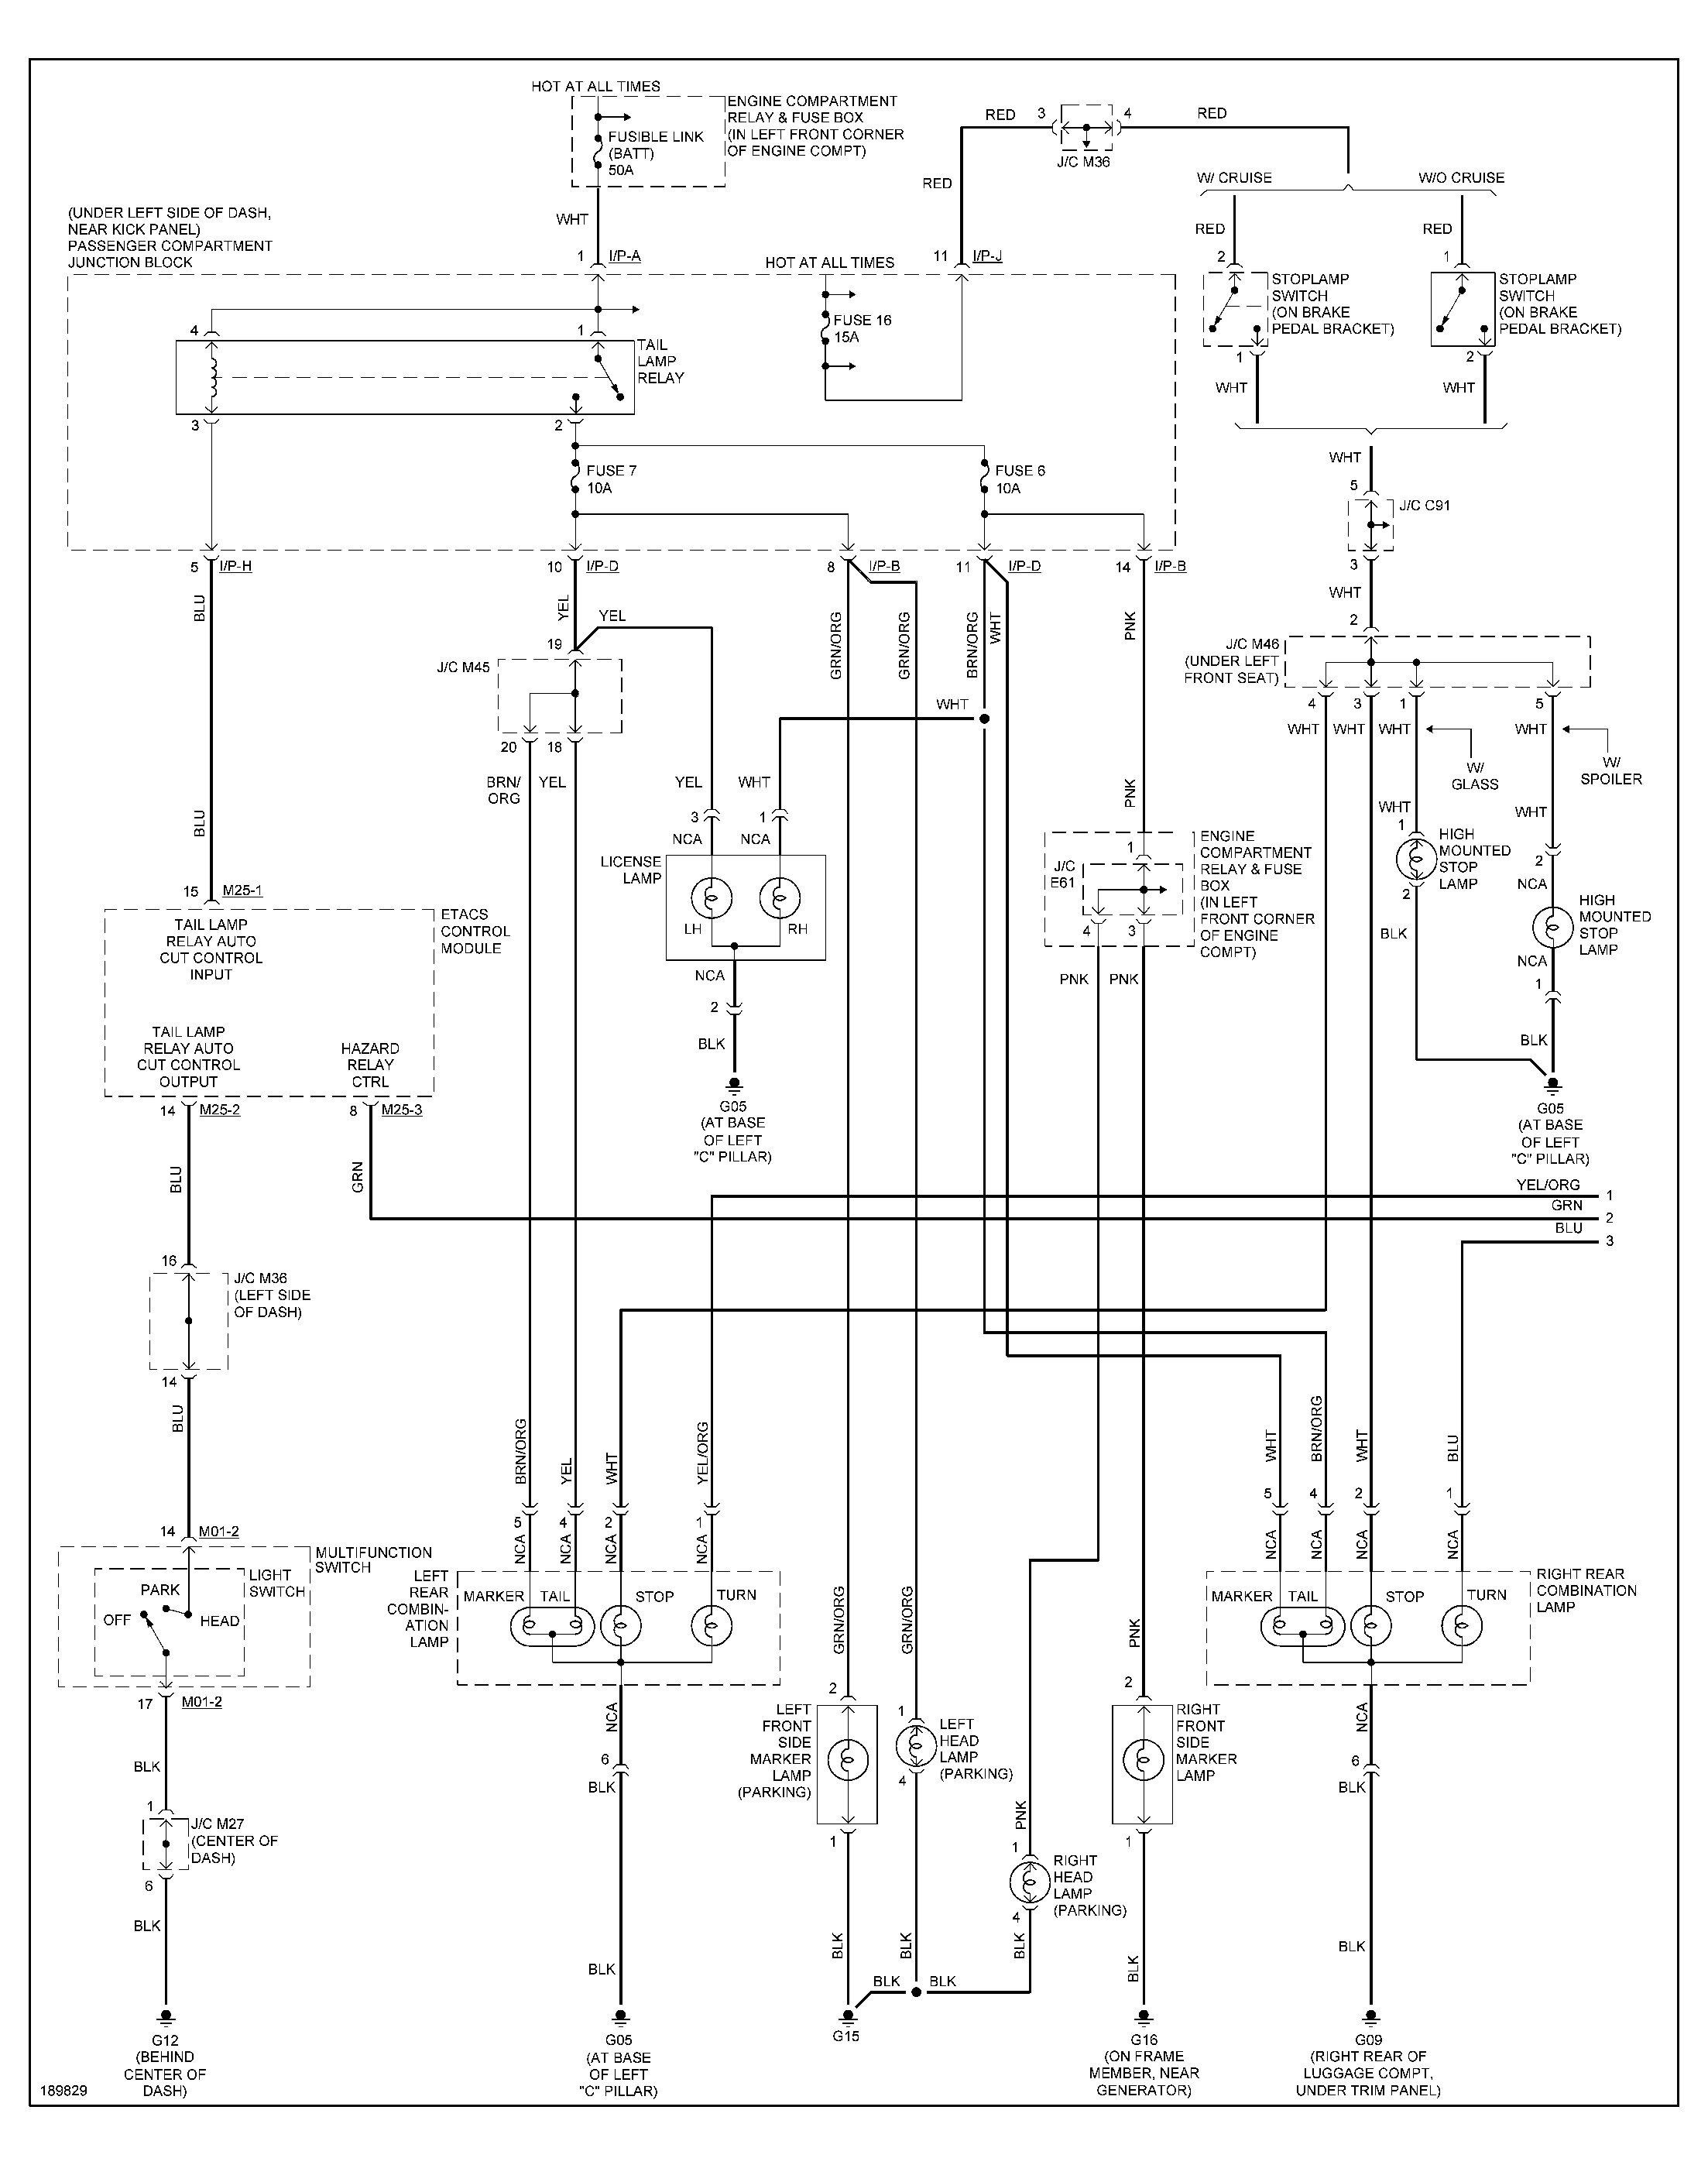 small resolution of metra 70 5520 wiring diagram awesome wiring diagram image formetra 70 5520 wiring diagram awesome wiring